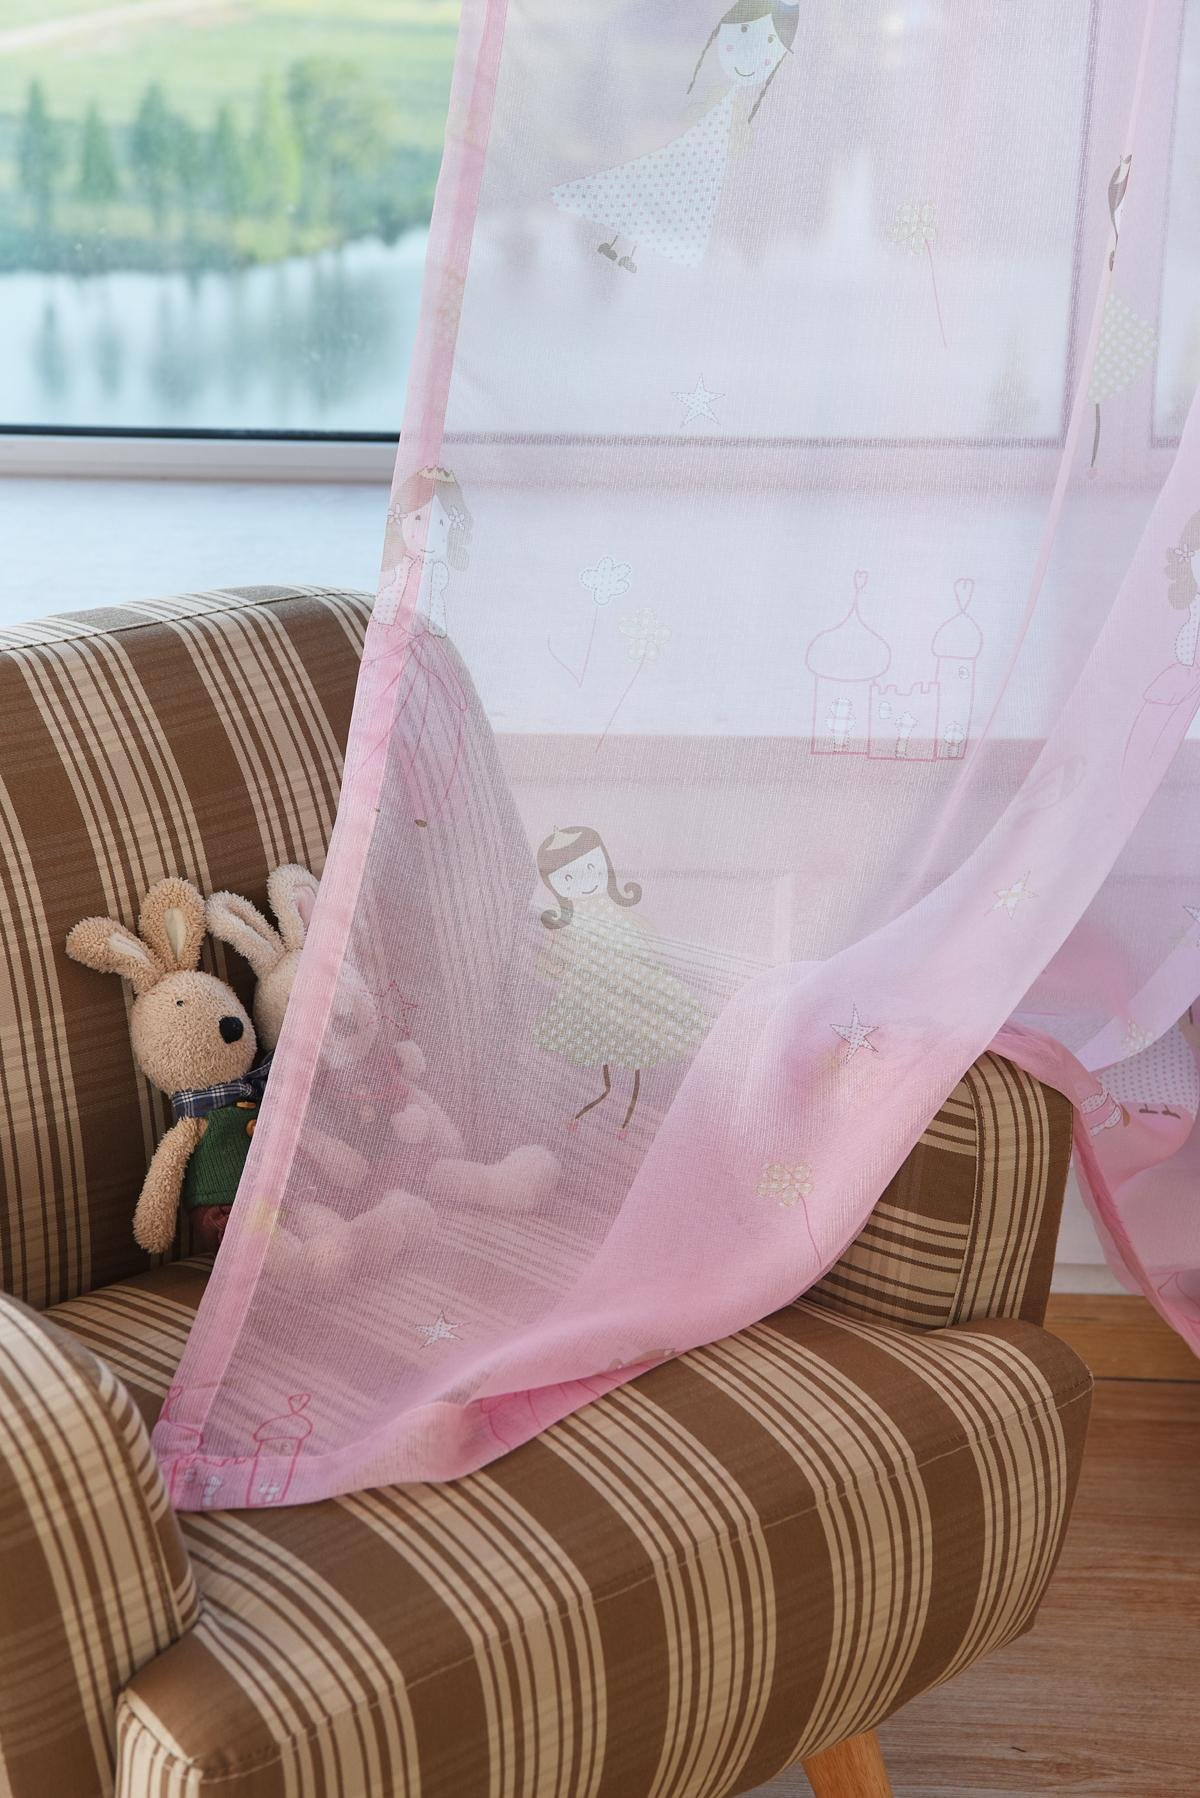 LQF Sheer Curtains Country Home Decor Pink Curtains for Bedroom Living Room Dining Room Teens Kids Girls Room Decorations Drapes , Grommet Process , One Panel , W40 by L84 inch